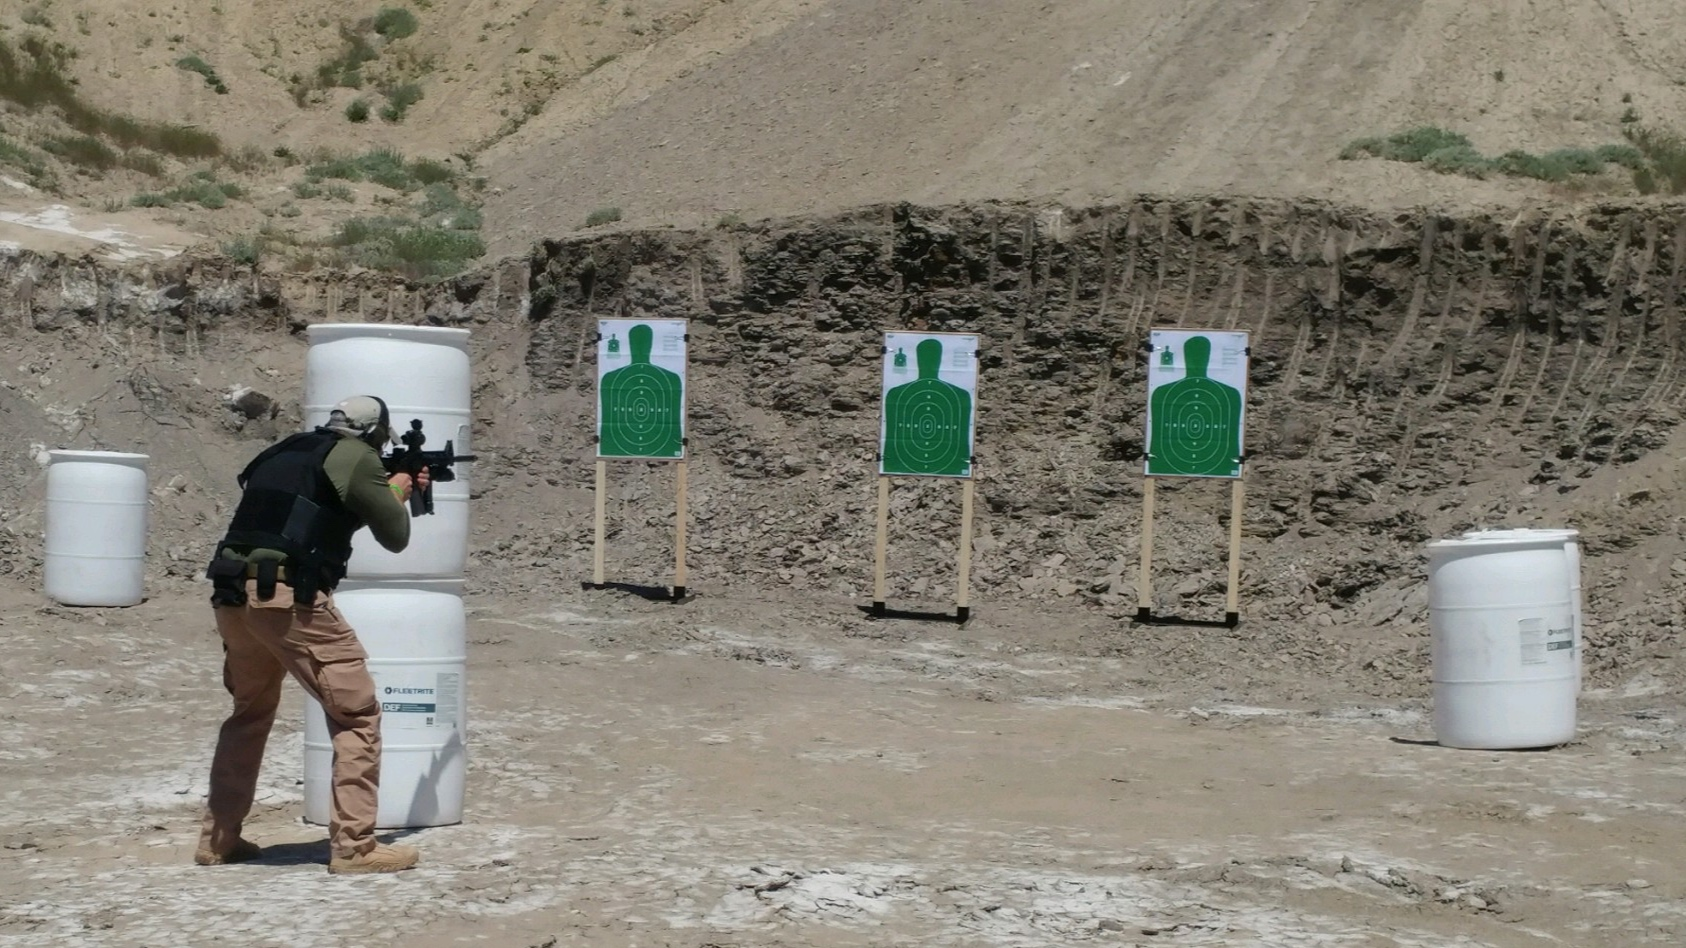 What we offer - We provide military and law enforcement style firearms training to the responsible civilian firearms user and specialized firearms and tactics training to military and law enforcement personnel.